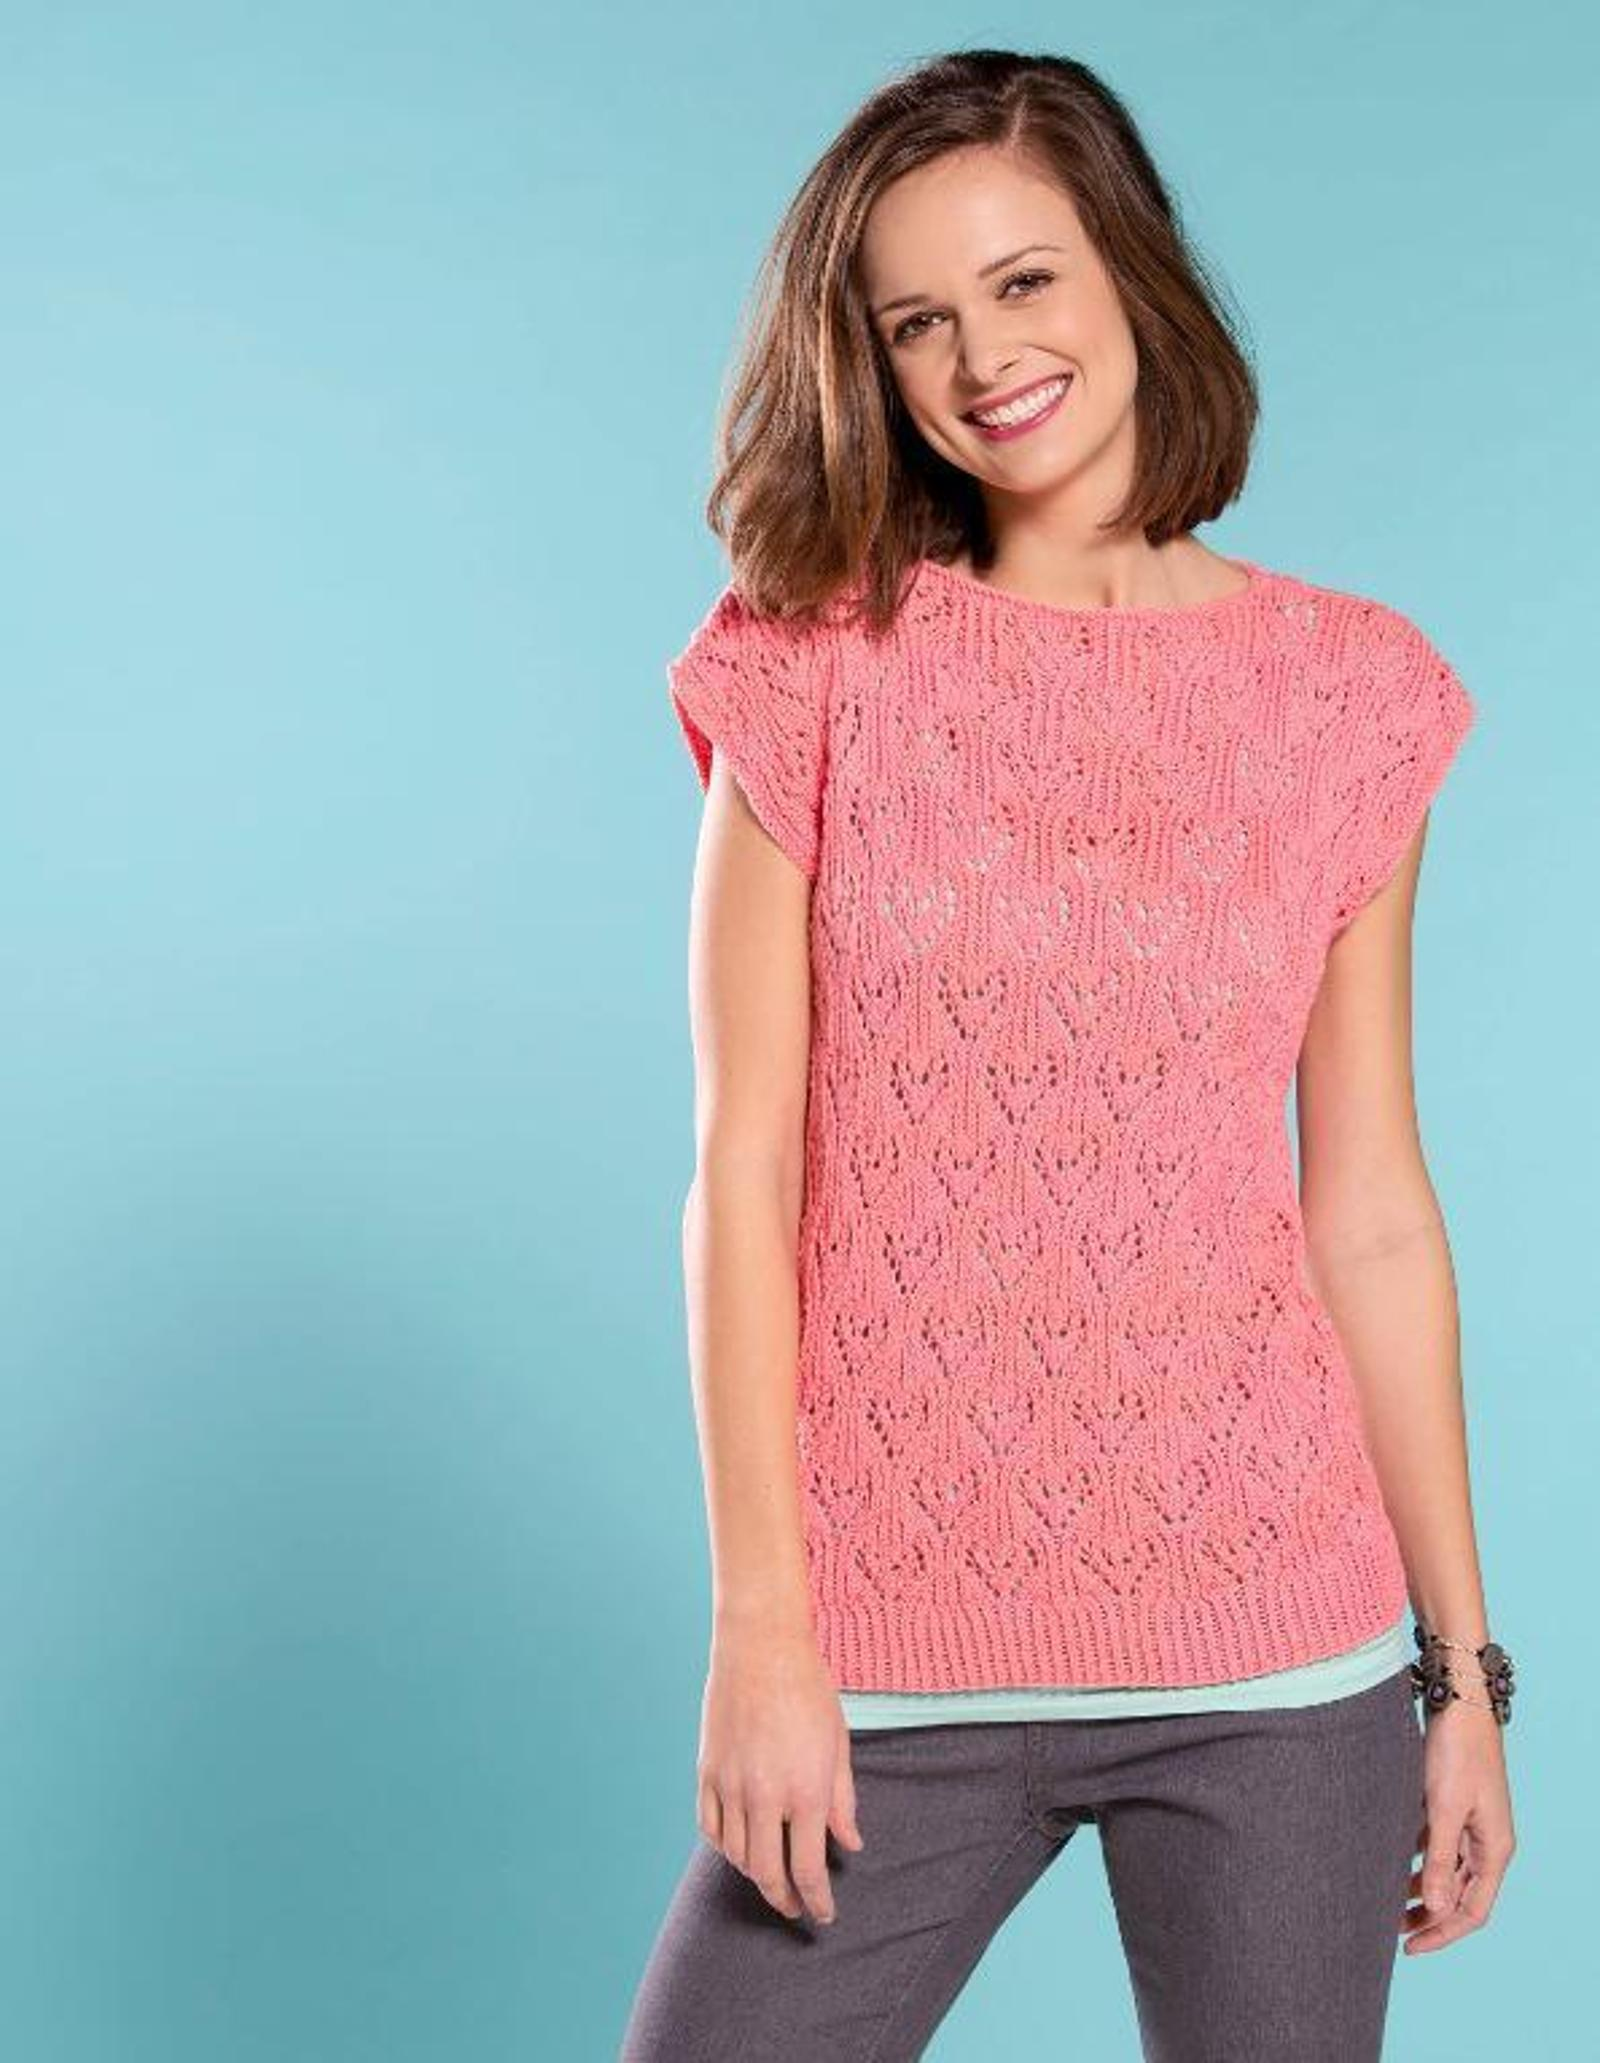 Love Lace Tee Knitting Pattern